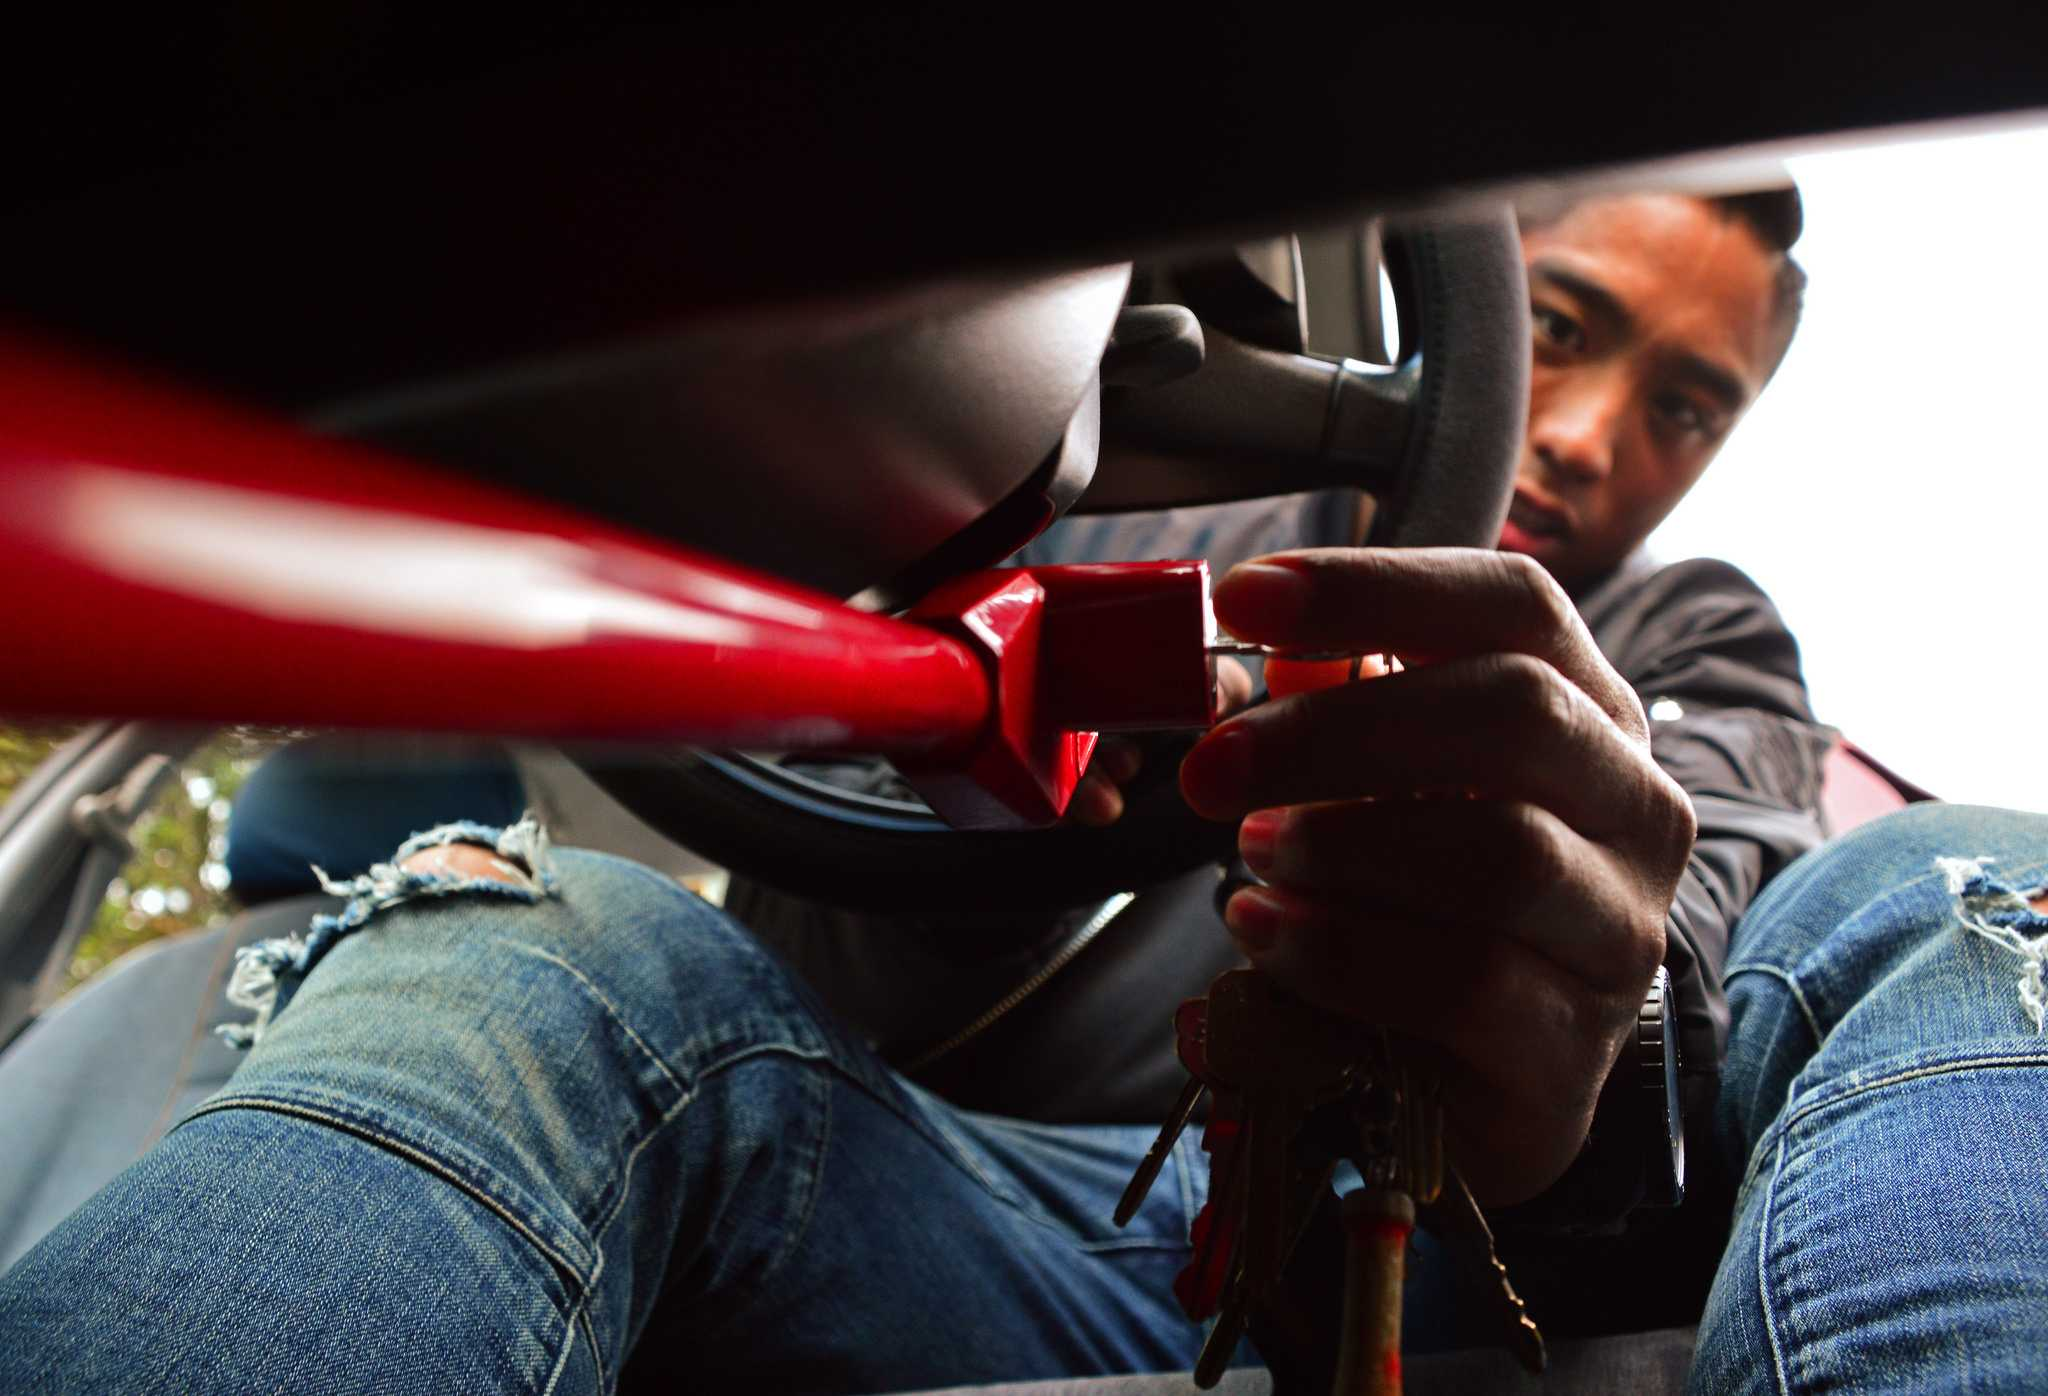 SF State biology teaching associate, Michael Cala, is applying his pedal break in his sister's vehicle to get around while his car is being repaired in a shop on Monday afternoon, Lake Merced Blvd., Daly City, September 28, 2015 (Katie Lewellyn / Xpress)